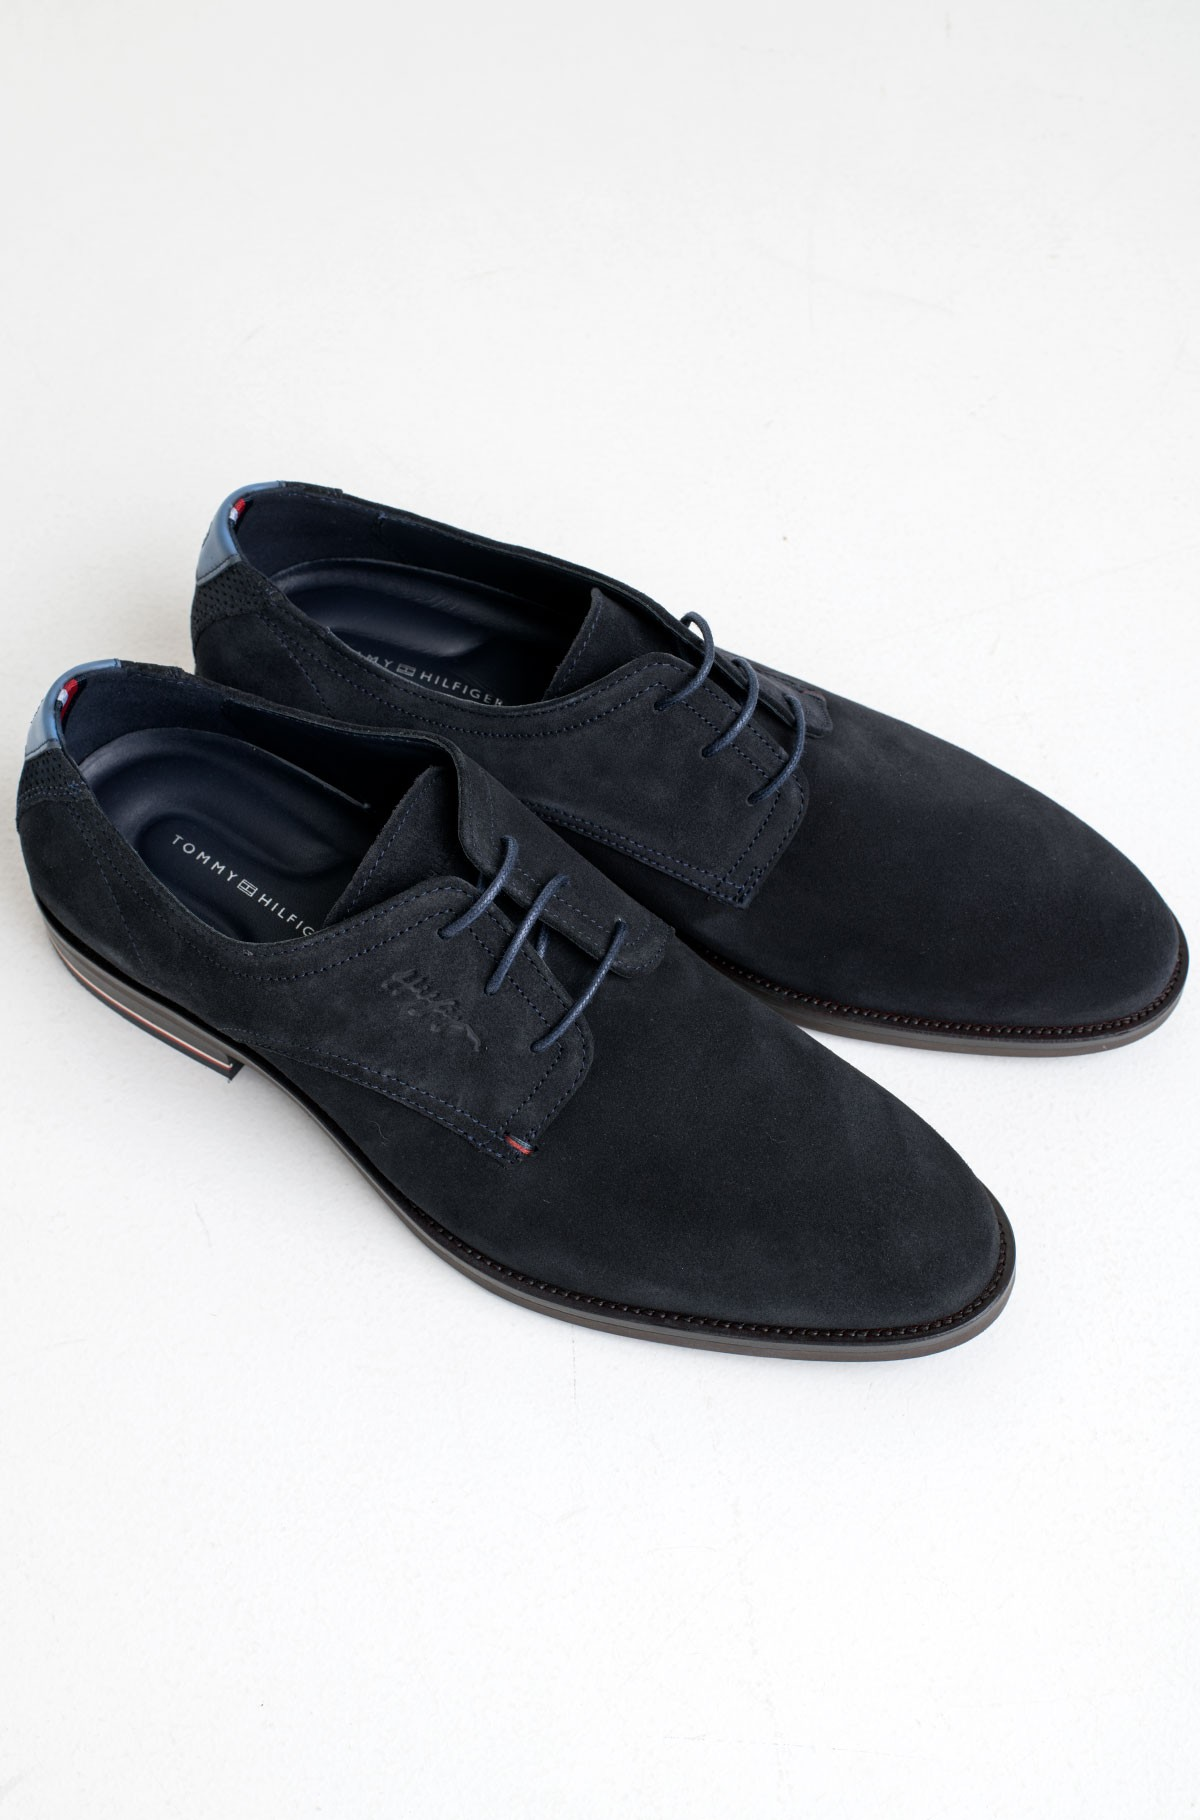 Kingad SIGNATURE HILFIGER SUEDE SHOE-full-1